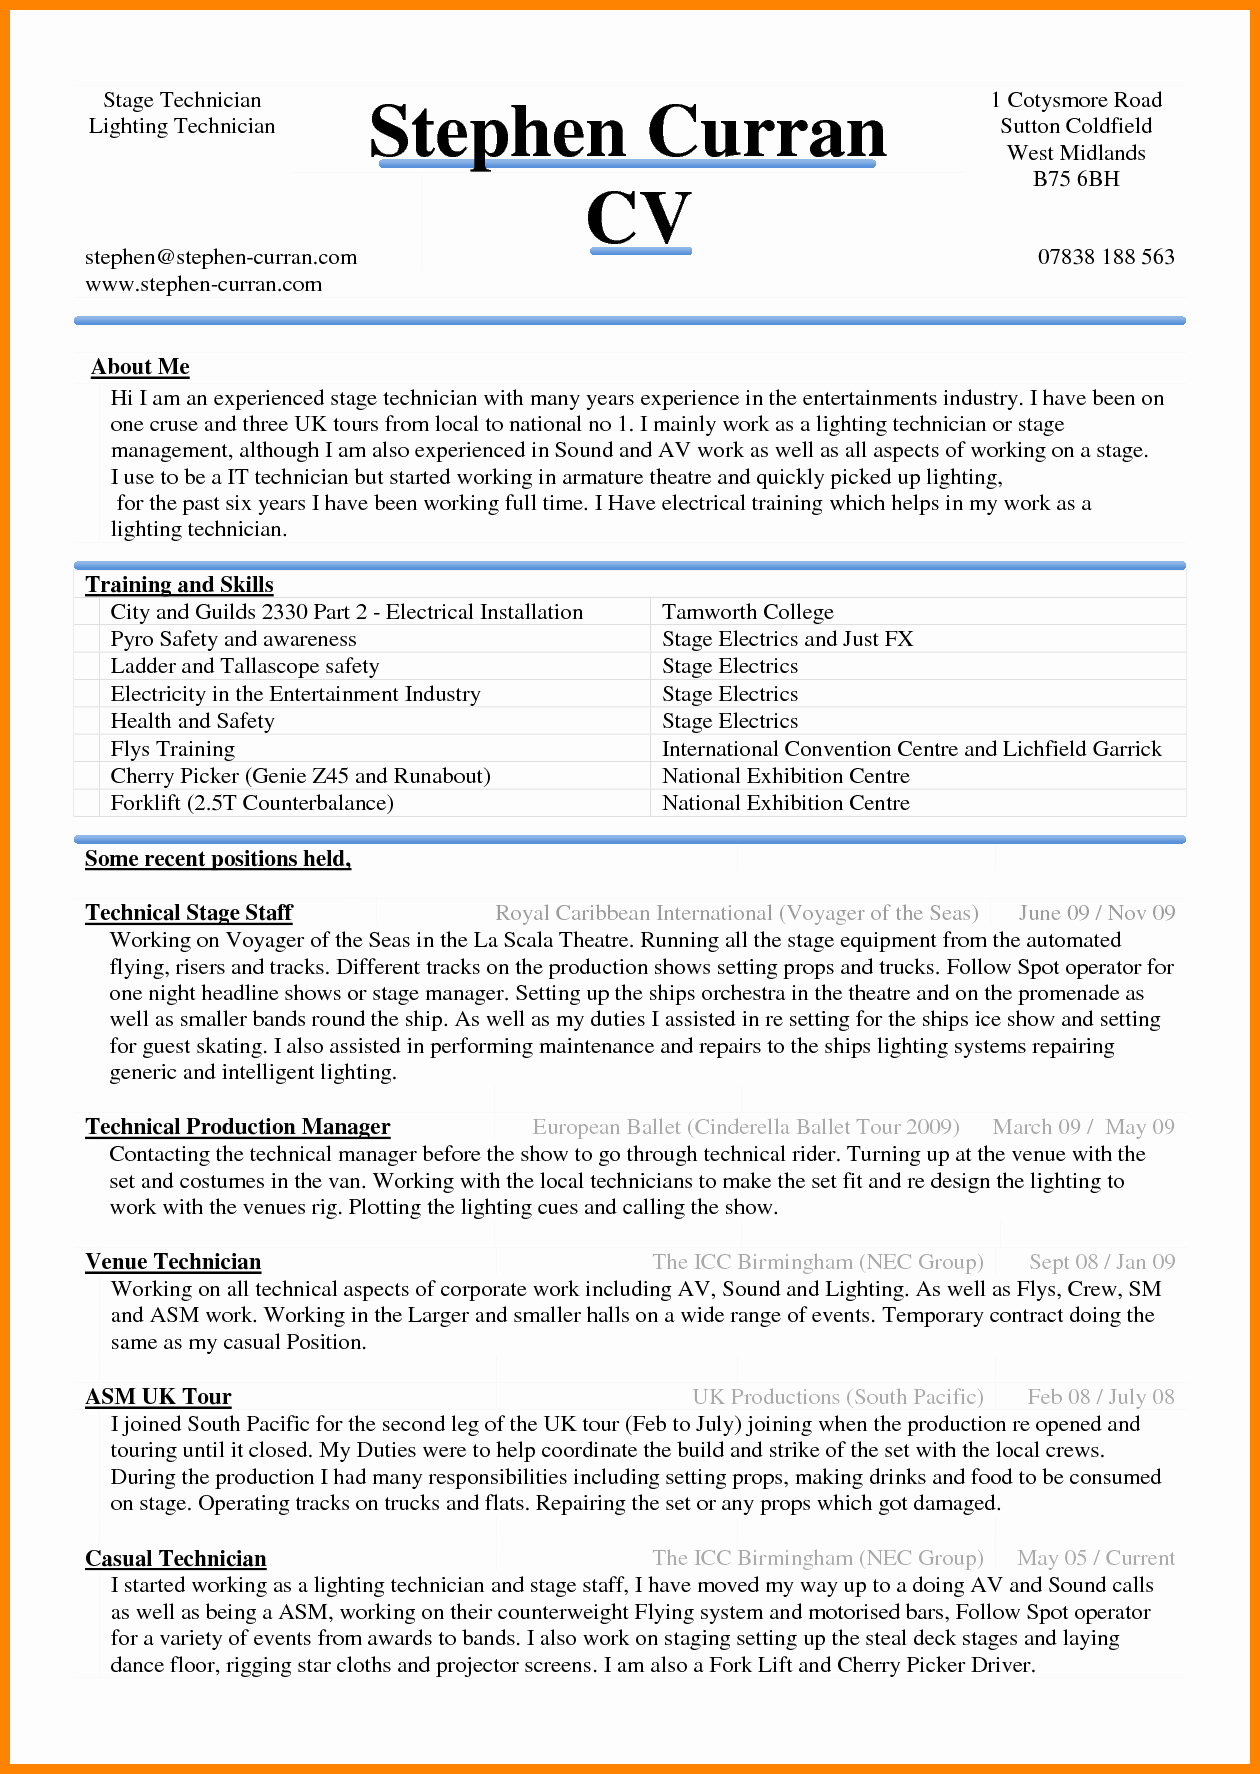 Curriculum Vitae Template Microsoft Word Awesome 6 Curriculum Vitae In Ms Word